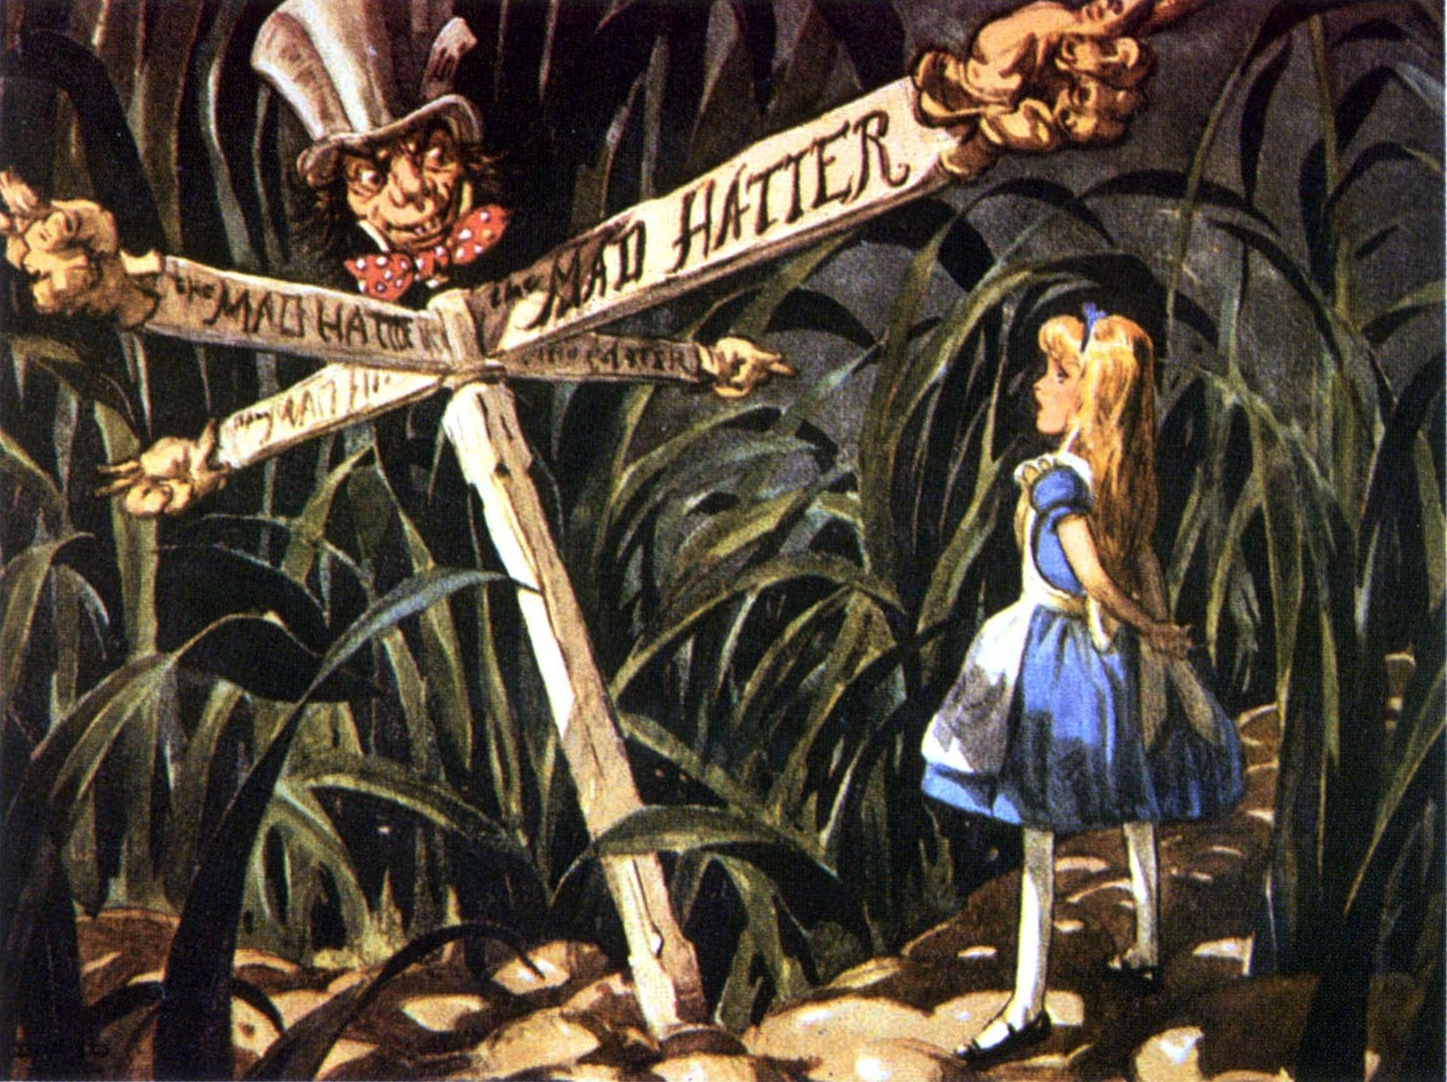 Alice at the crossroads